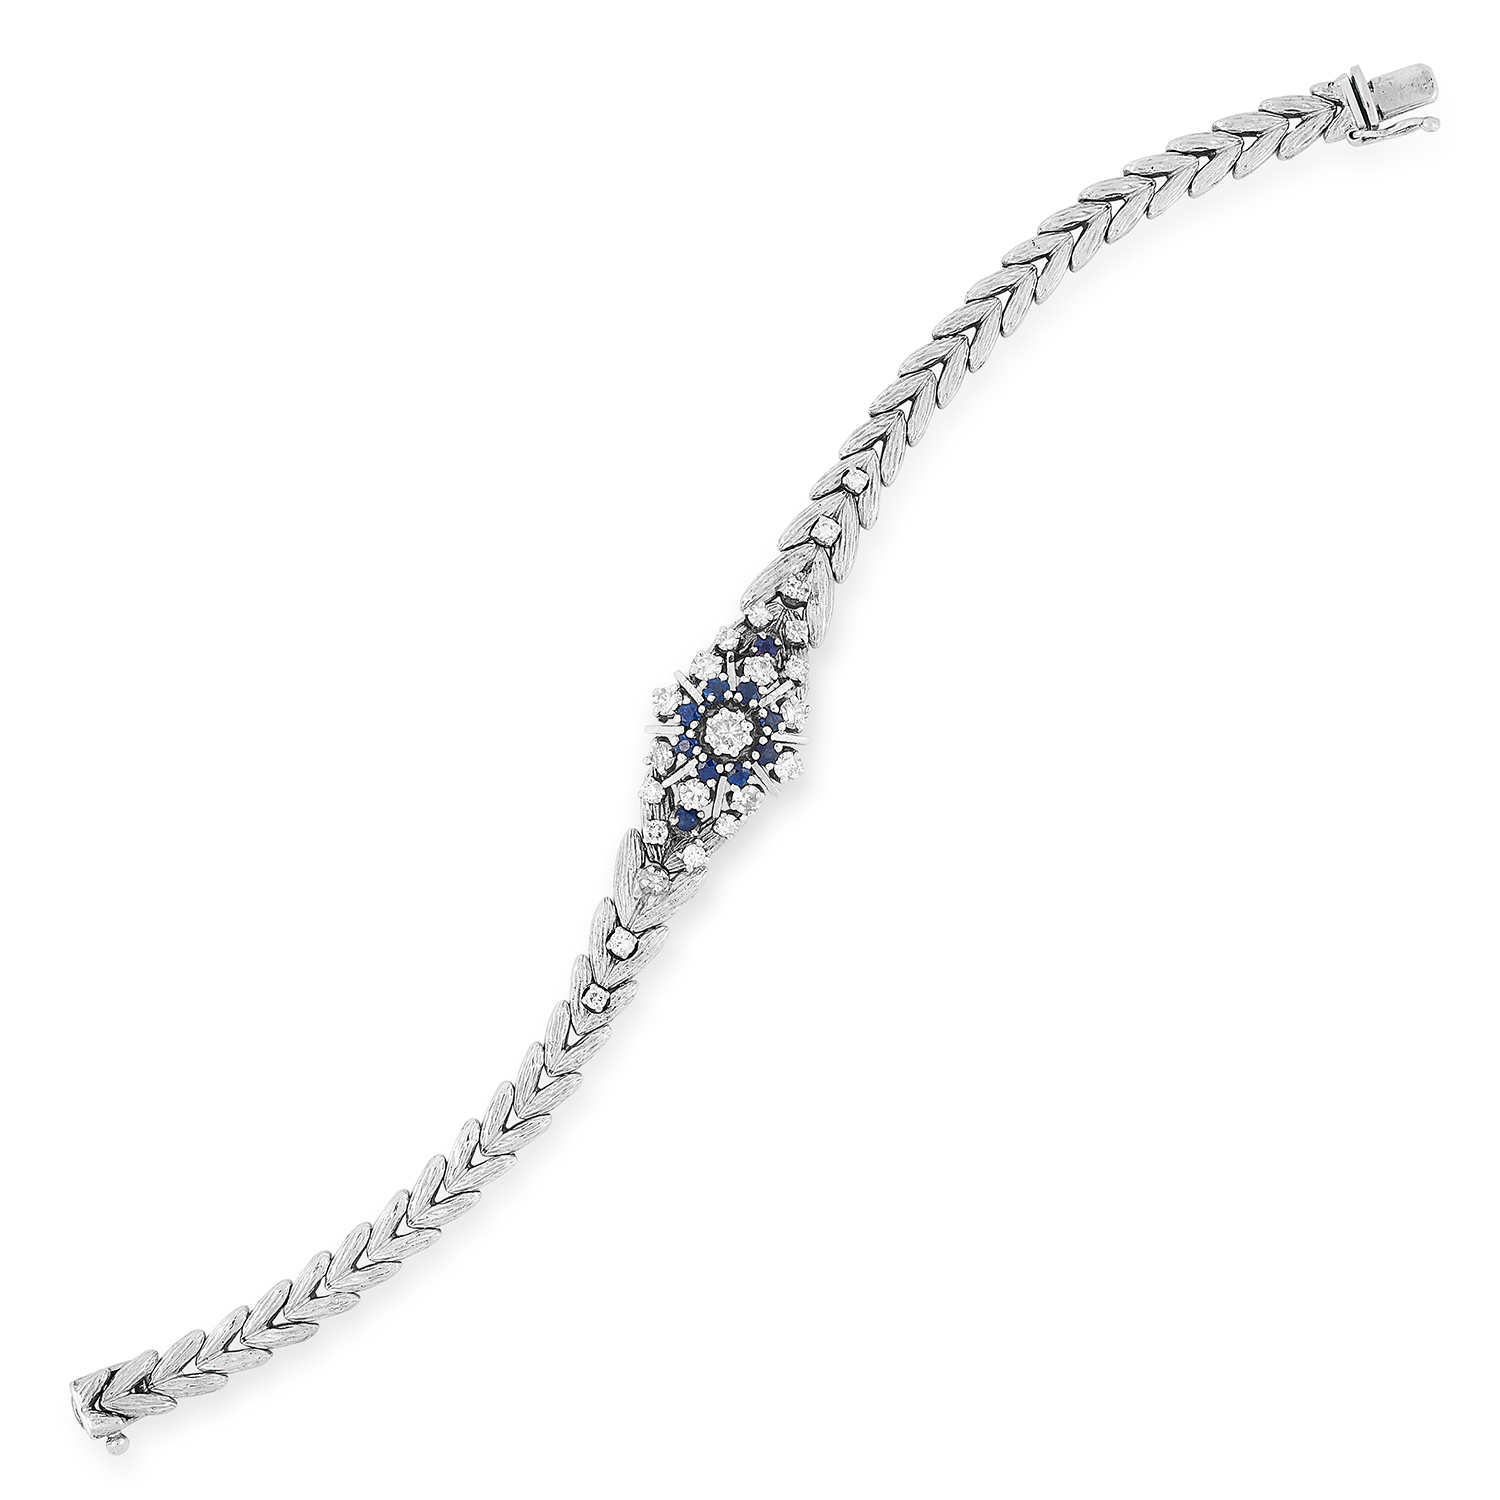 SAPPHIRE AND DIAMOND BRACELET the fancy link chain is set with round cut diamonds and sapphires,